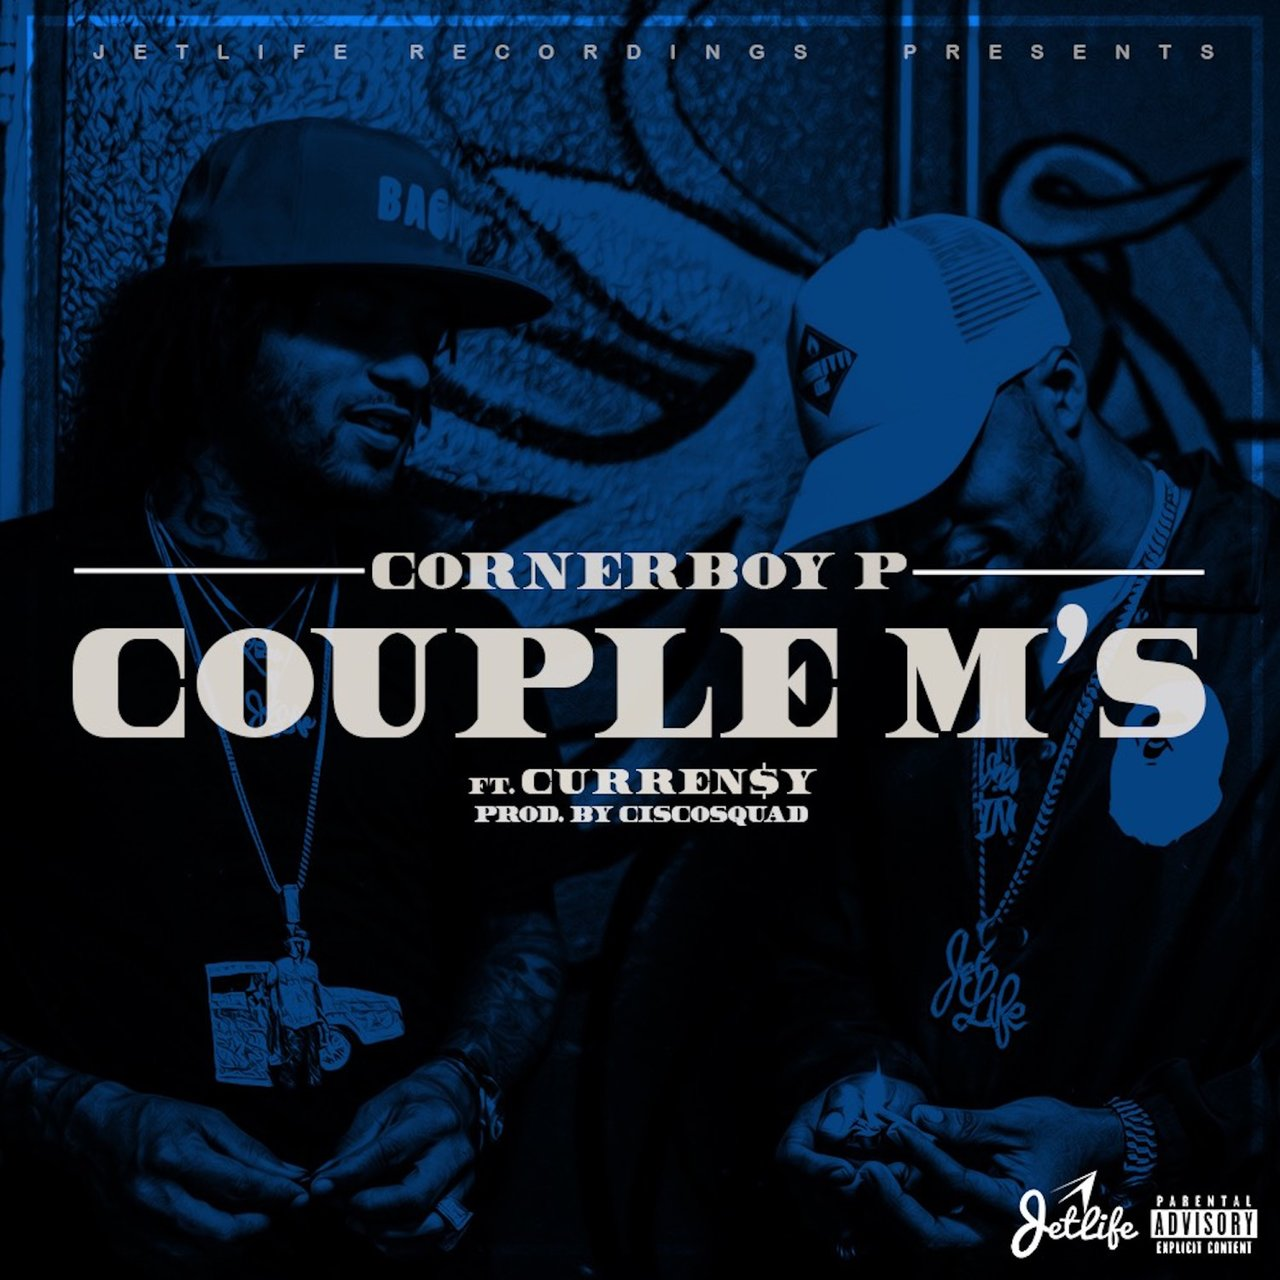 Couple M's (feat. Curren$y)